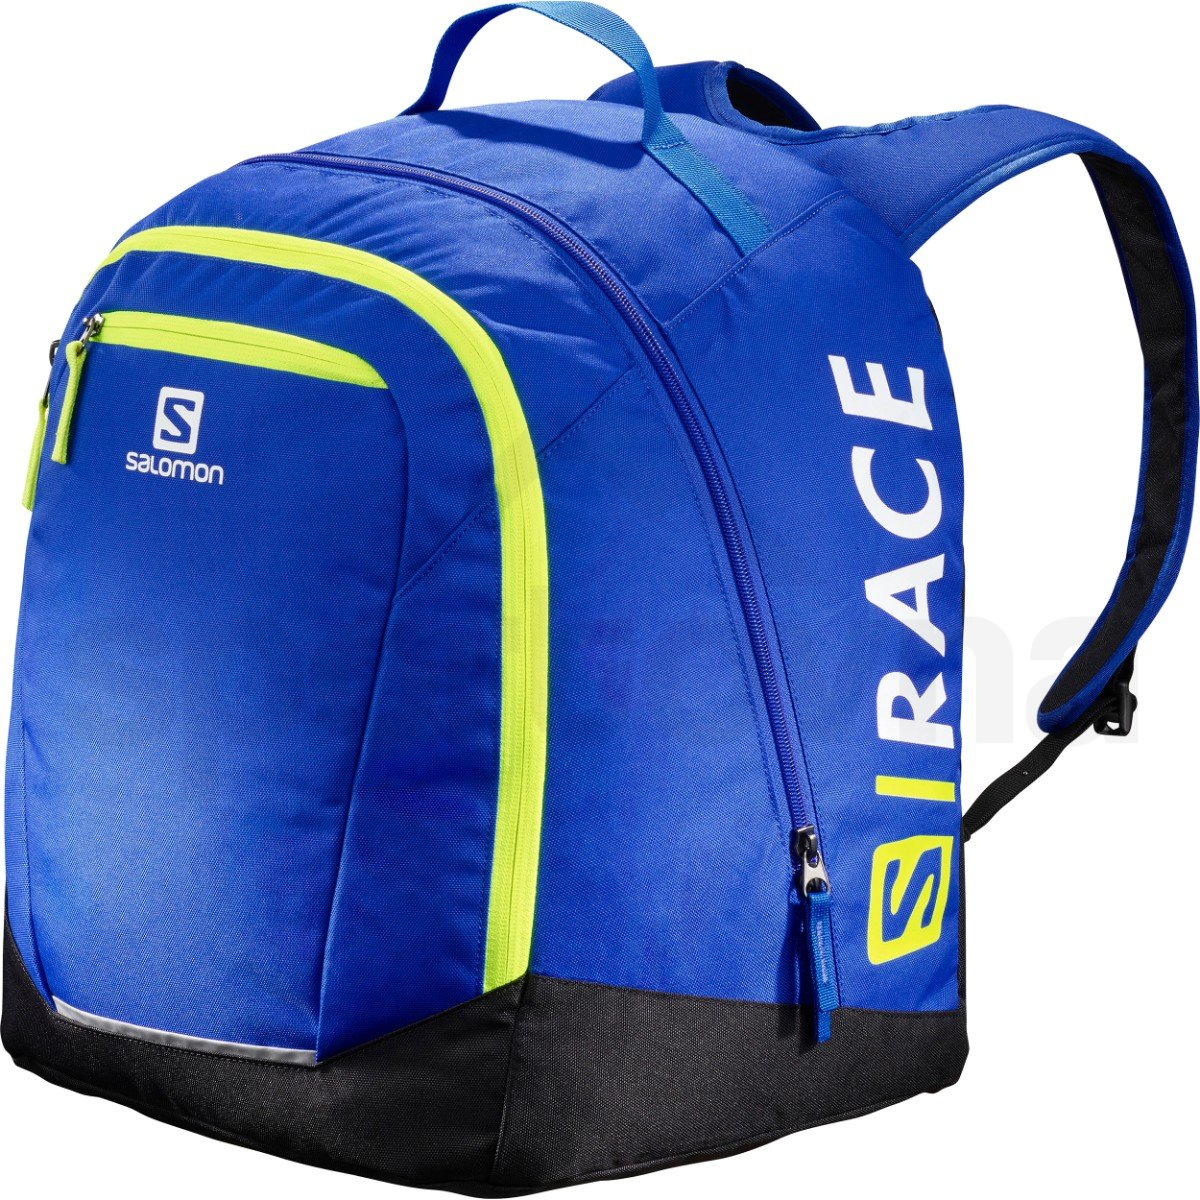 LC1171200_0_GHO_U_original_gear_backpack_race_blue.jpg.cq5dam.web.1200.1200